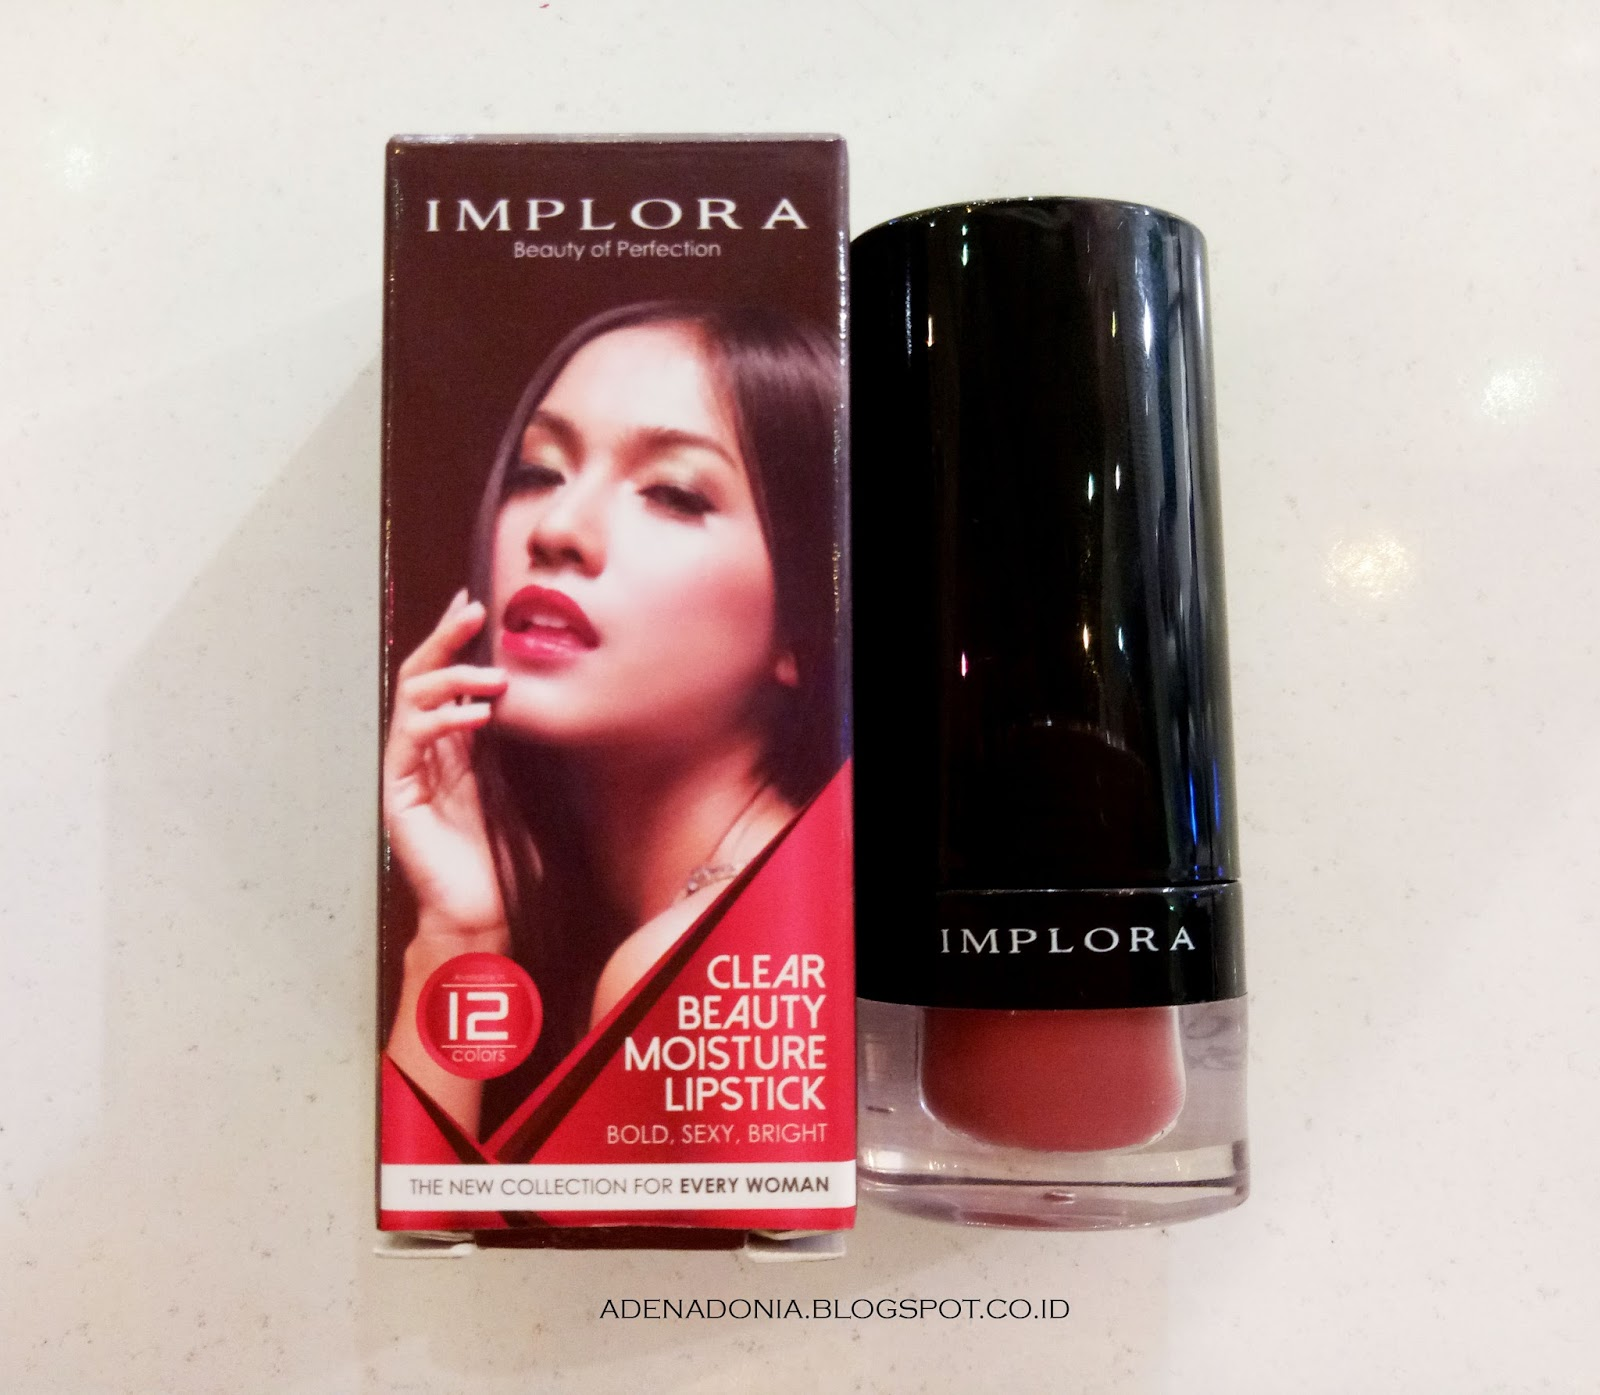 Review : IMPLORA CLEAR BEAUTY MOISTURE LIPSTICK shade 11